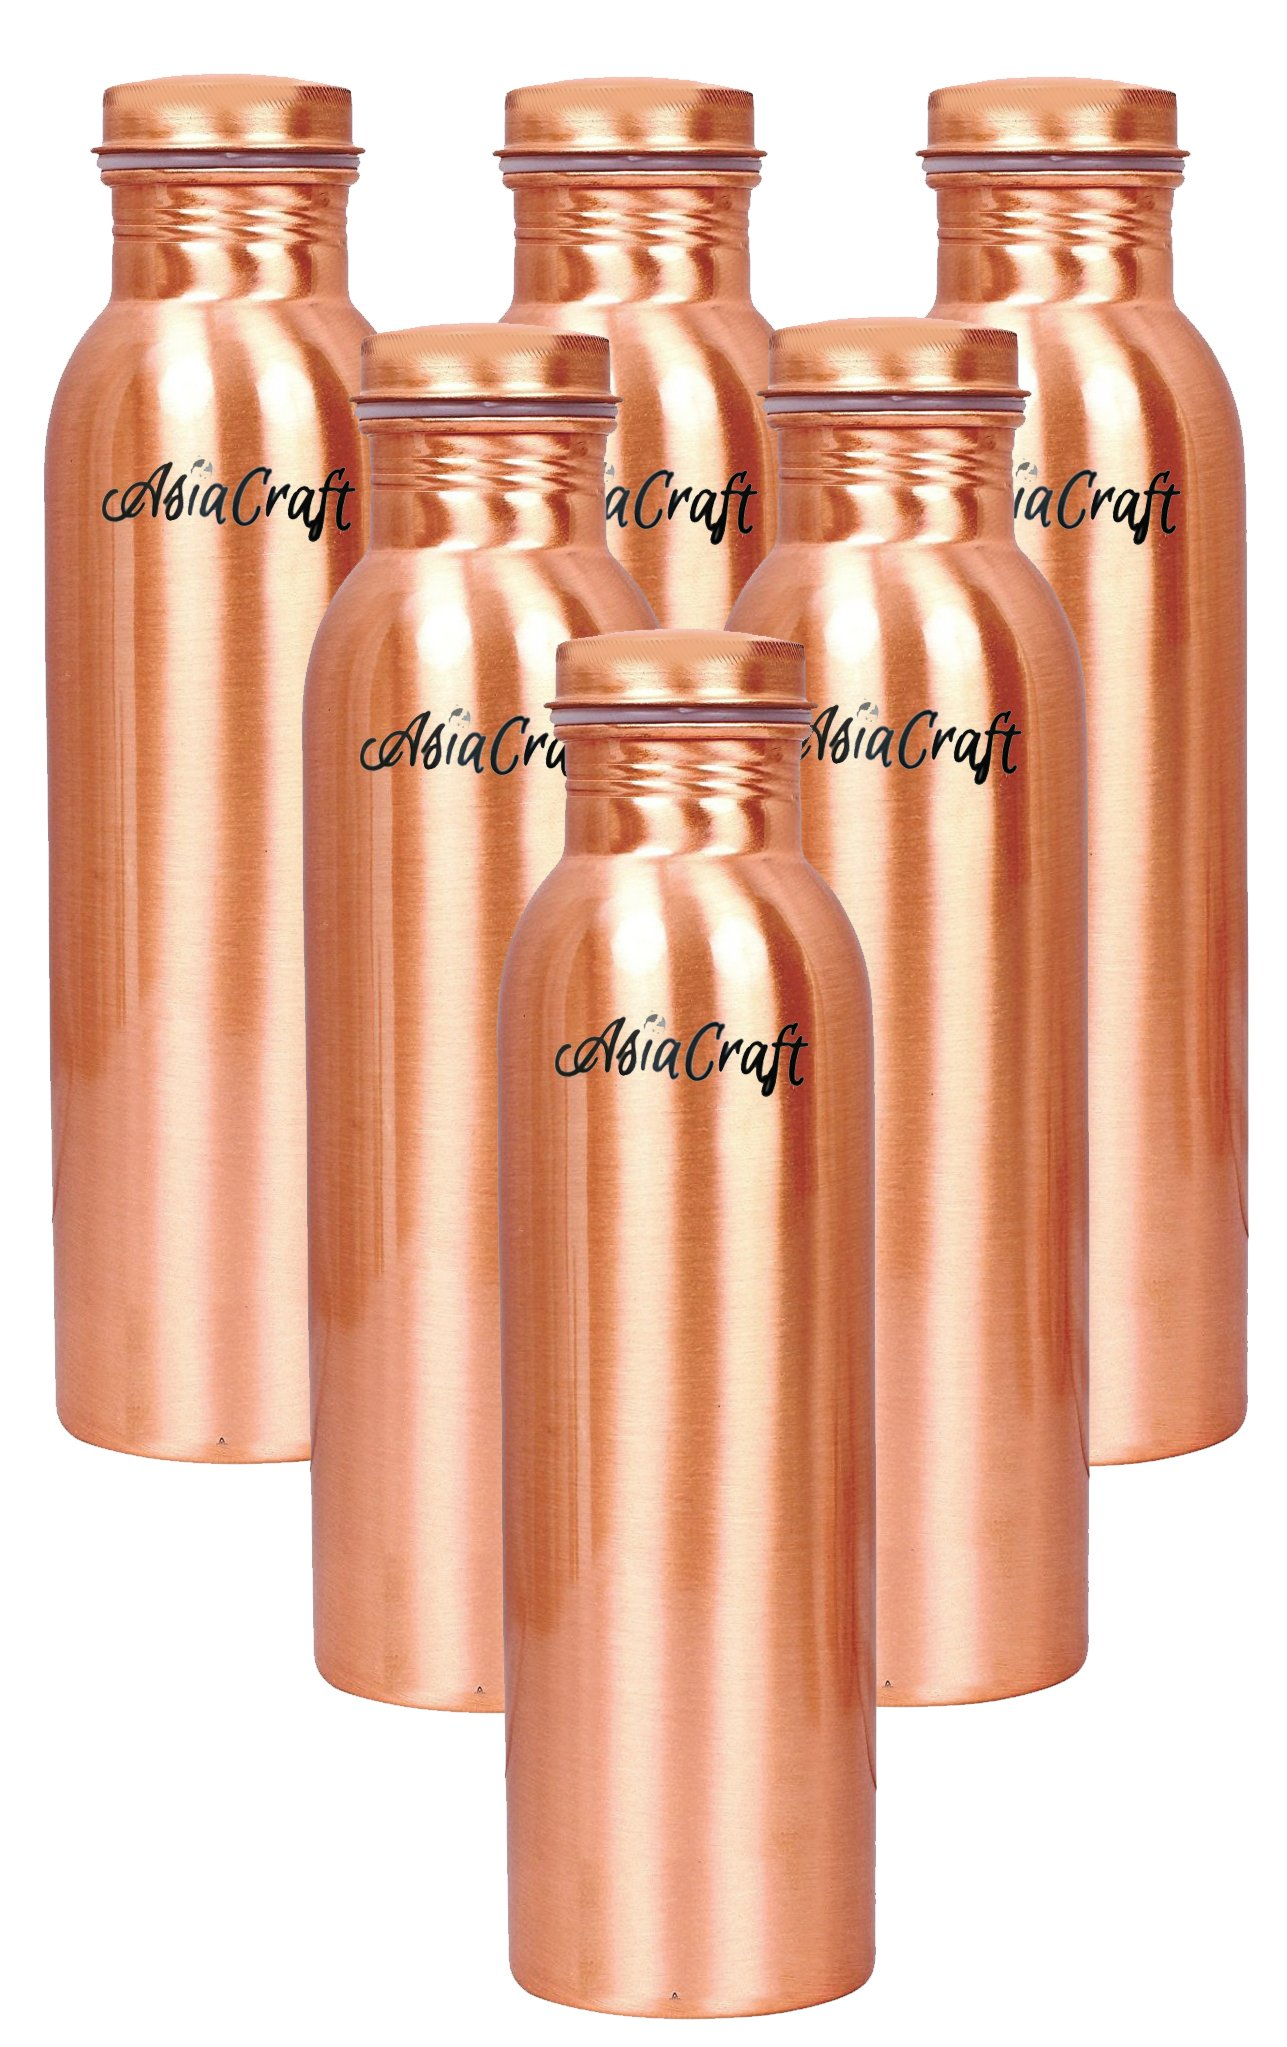 AsiaCraft 100% Pure Handmade Copper Bottle Leak Proof, Lacquer Coat, 1 Liter, Set Of 6 | Yoga Water Bottle